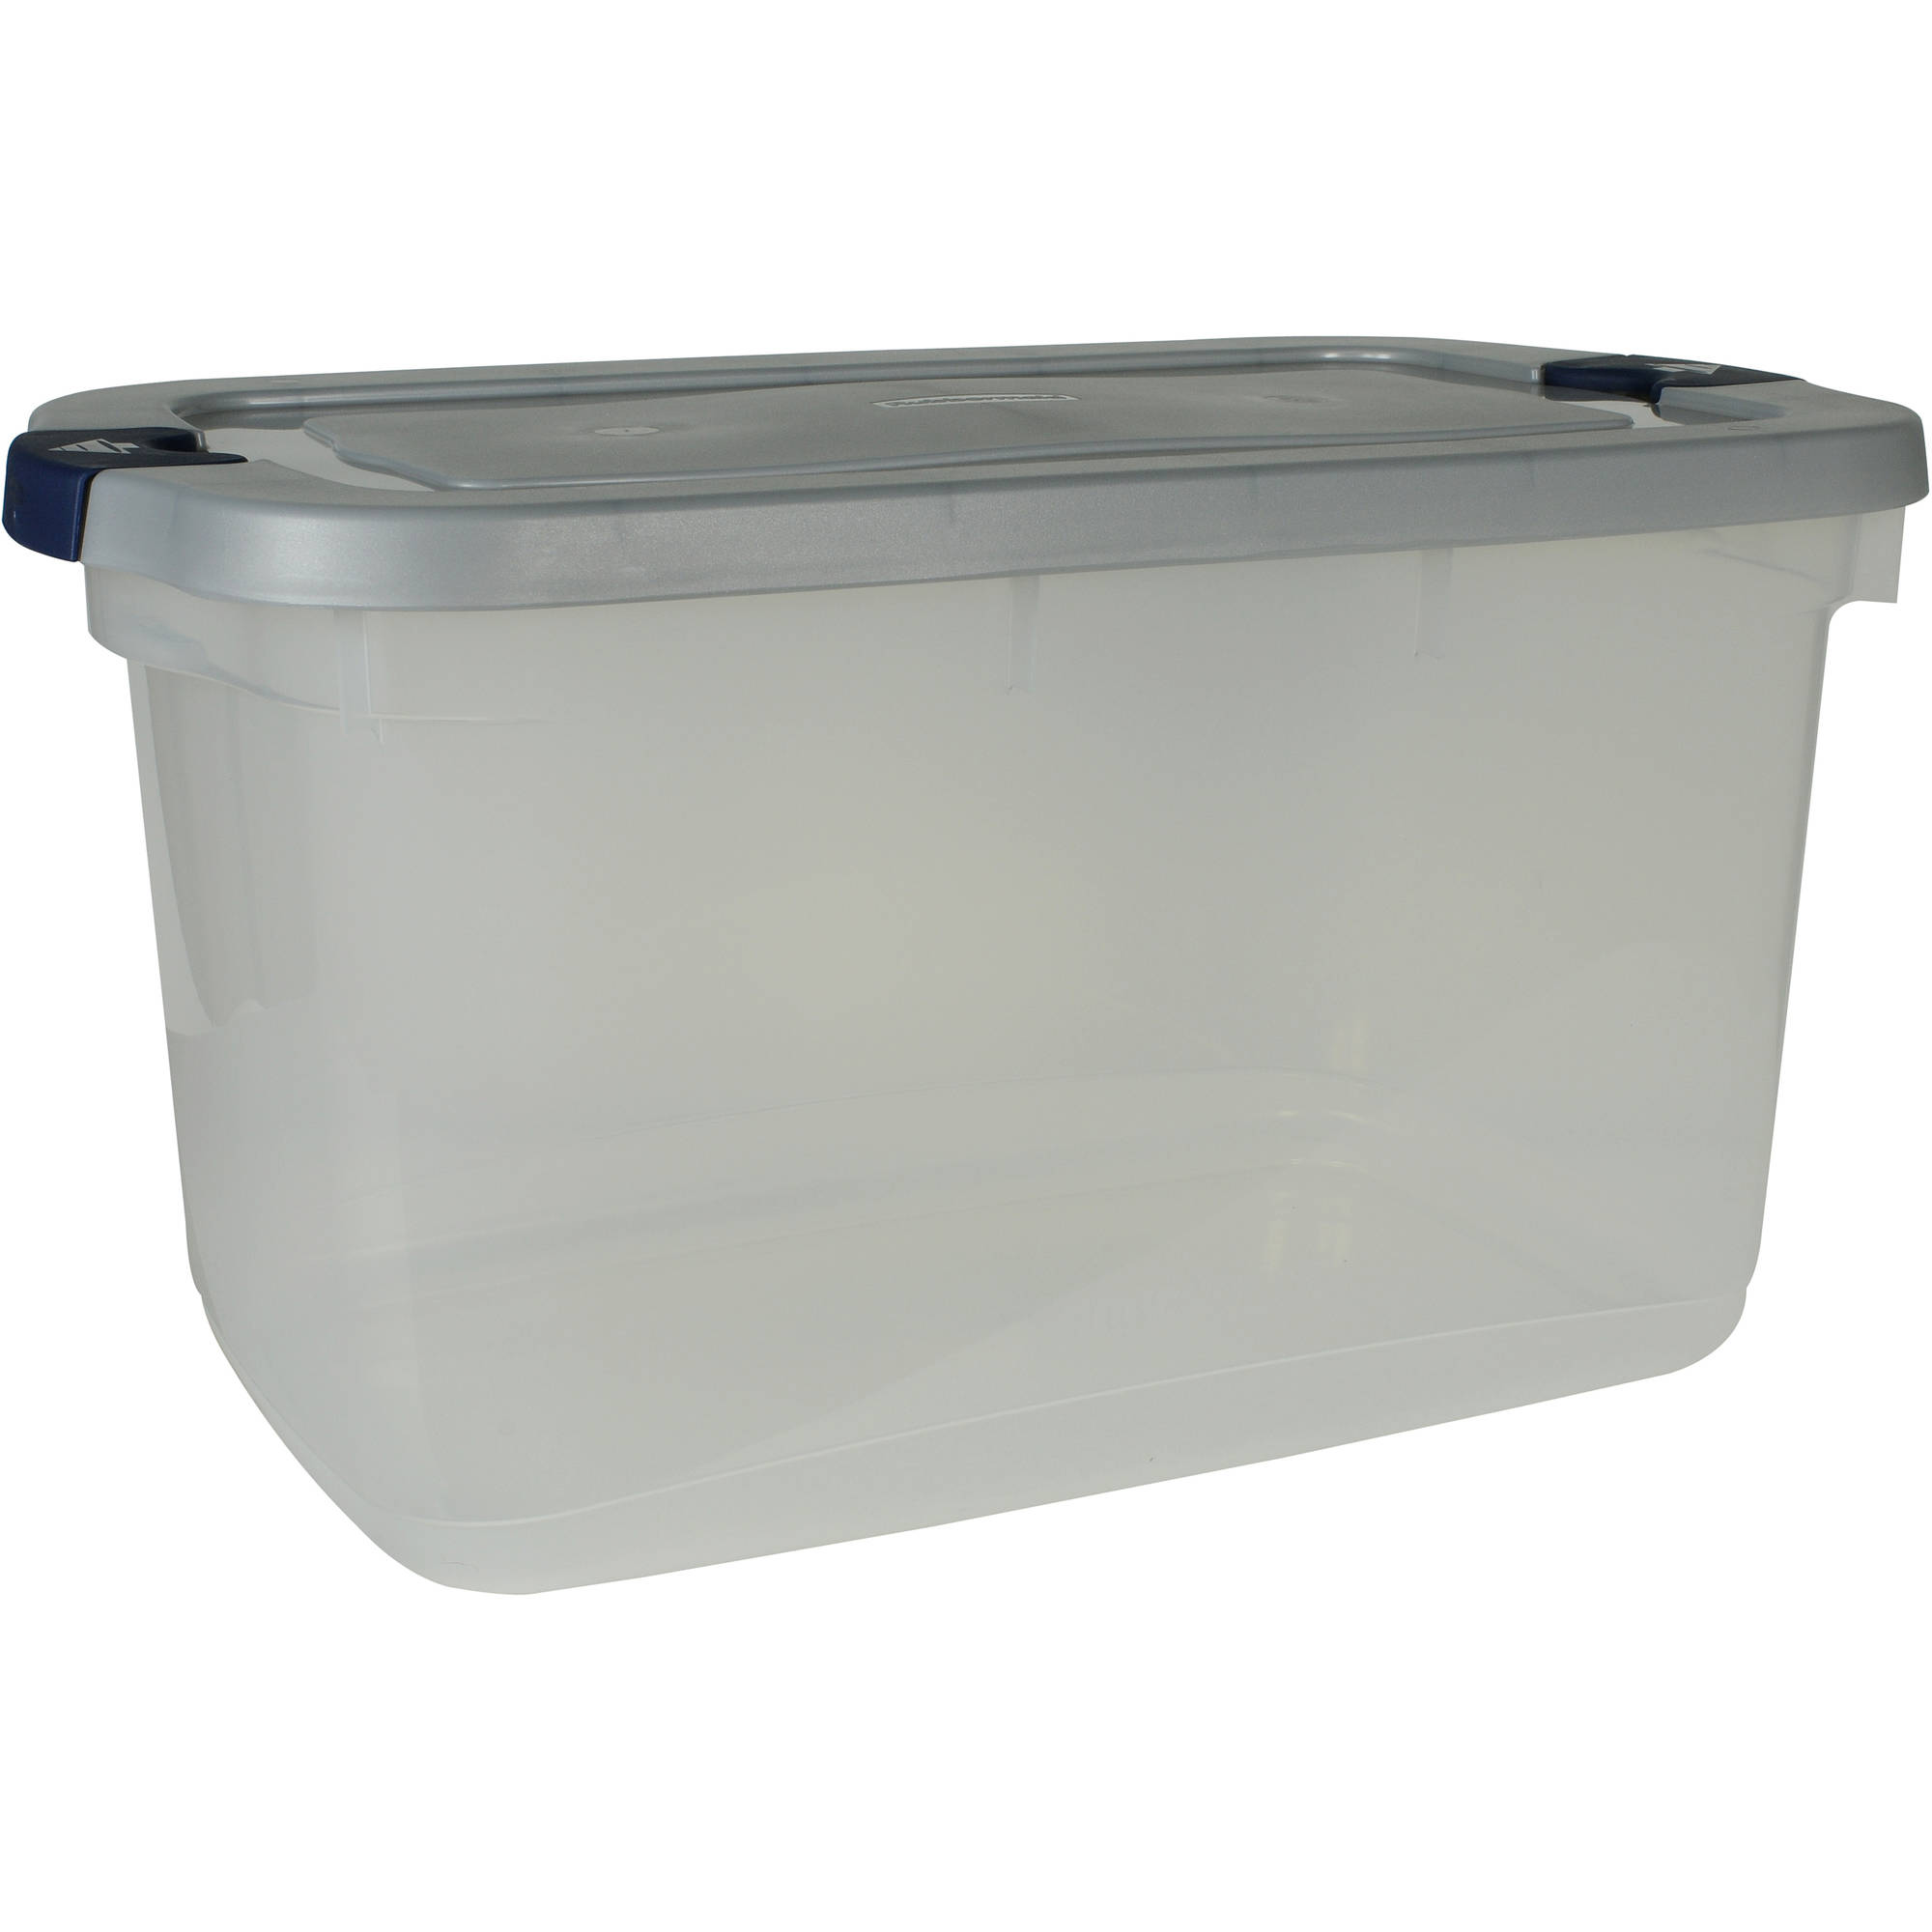 Rubbermaid Roughneck Clear Storage Tote Bins, 66 Qt (16.5 Gal), Clear with Gray Lid, Set of 4